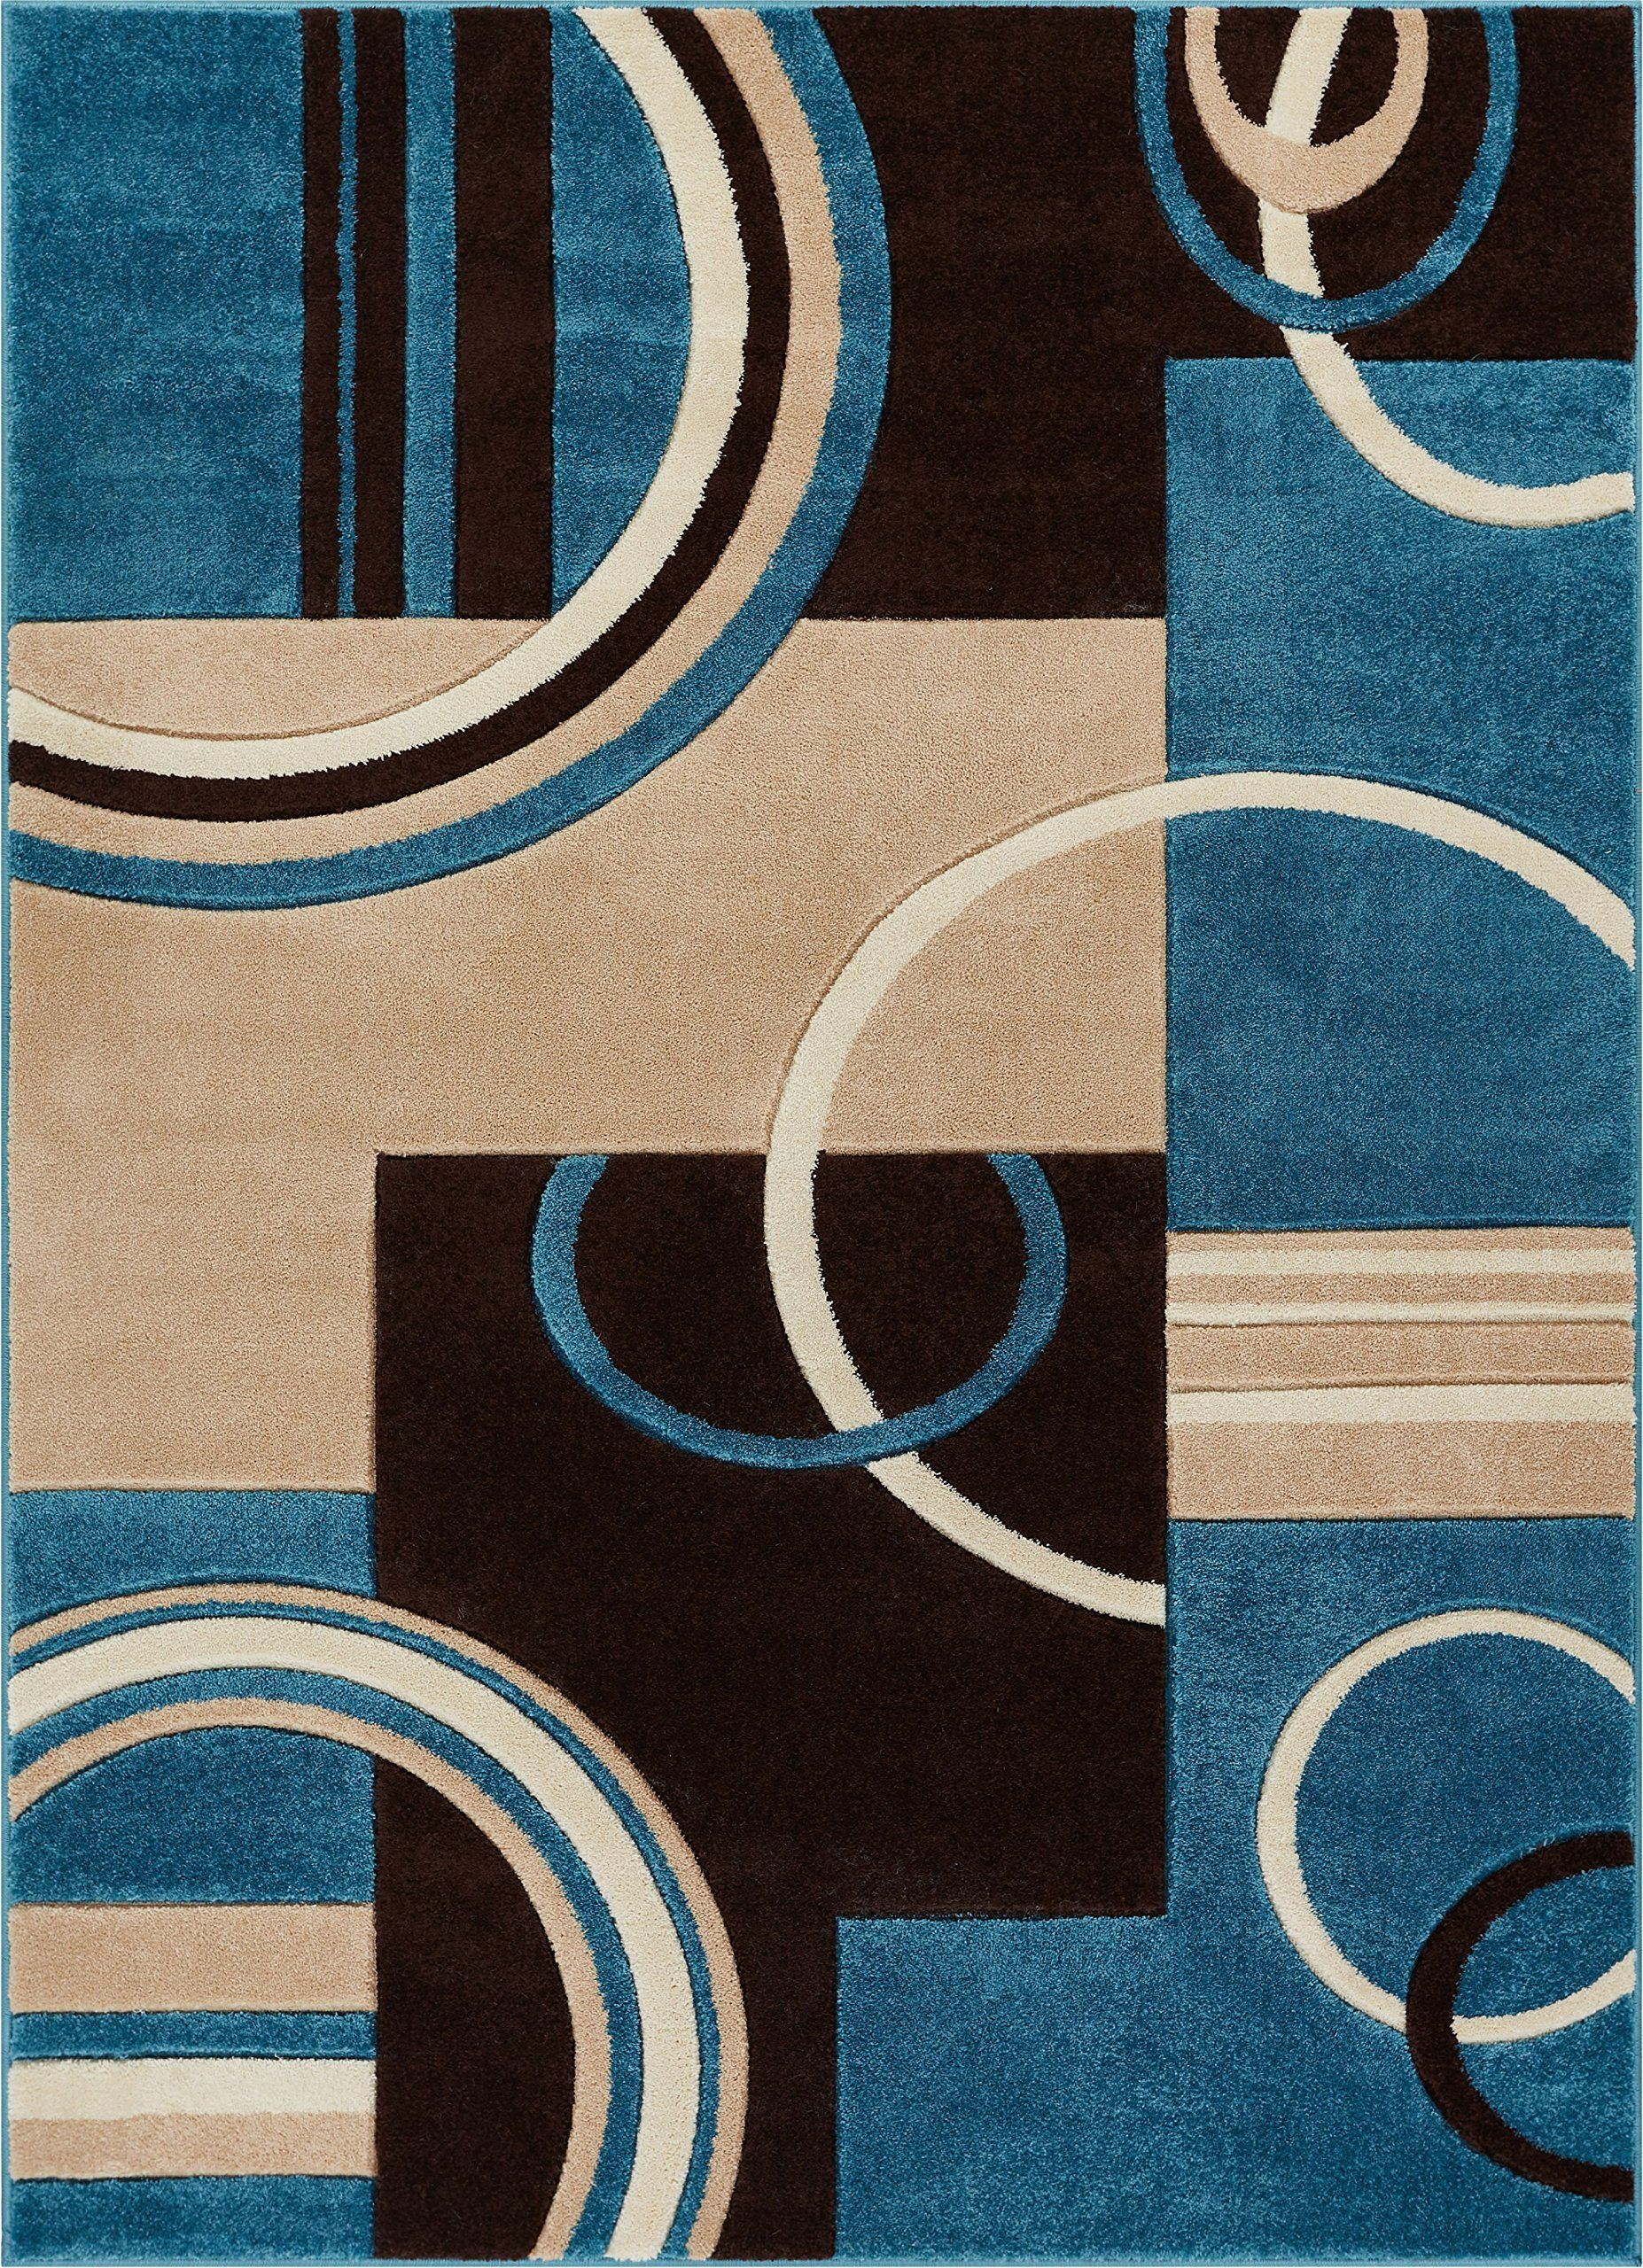 Echo Shapes And Circles Blue And Brown Modern Geometric Comfy Casual Hand Carved Area Rug 5x7 53 X 73 Easy C Blue Gray Area Rug Well Woven Geometric Area Rug